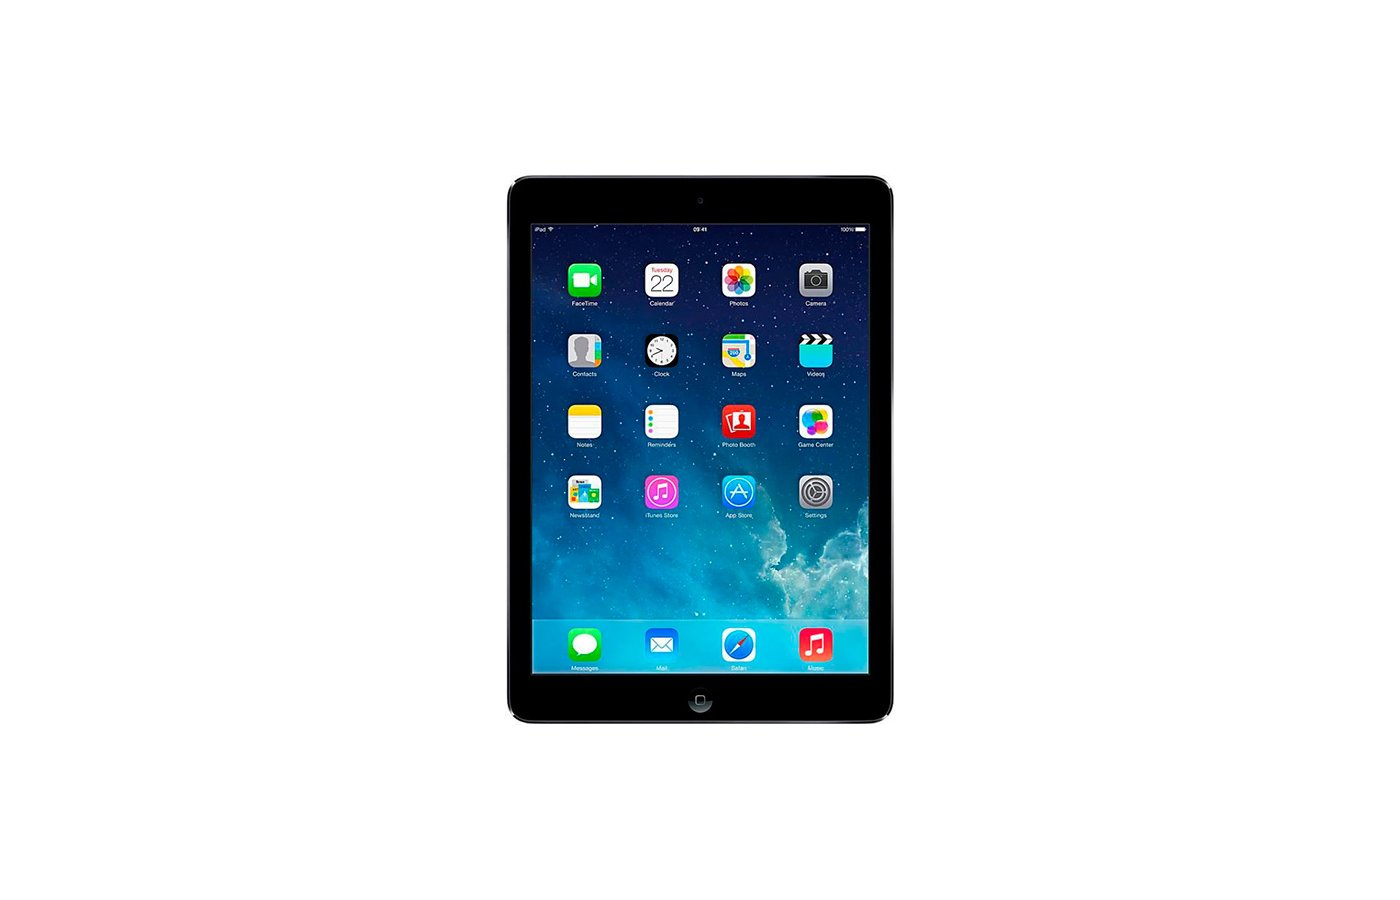 Планшет Apple iPad Air 2 WiFi + Cellular 128GB (MGWL2RU/A) Space Grey